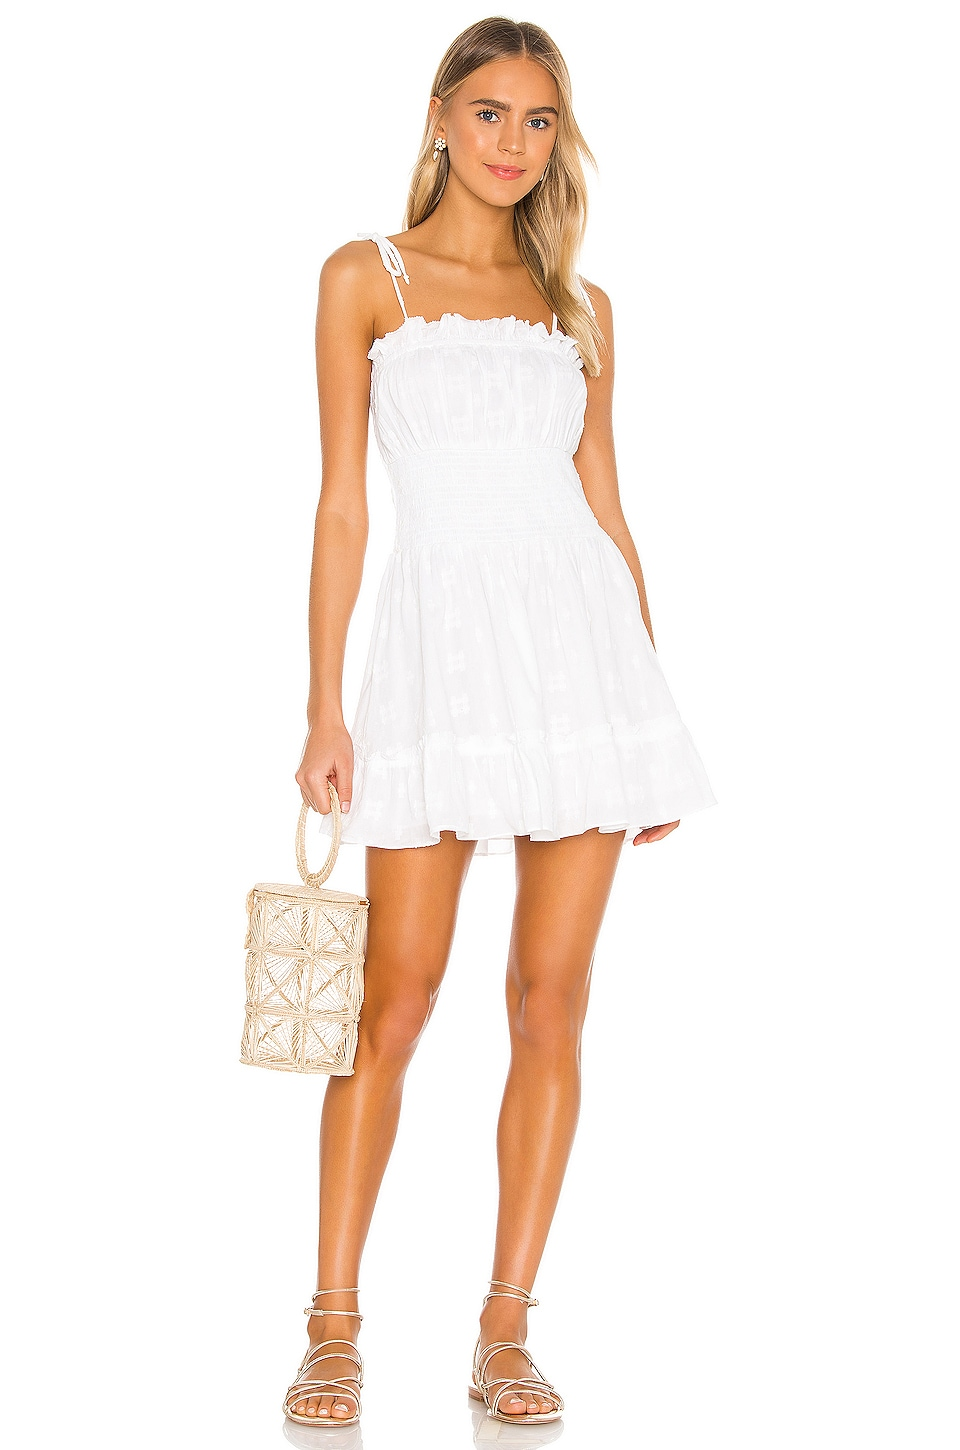 Marrakesh Mini Dress             Cleobella                                                                                                       CA$ 235.91 4